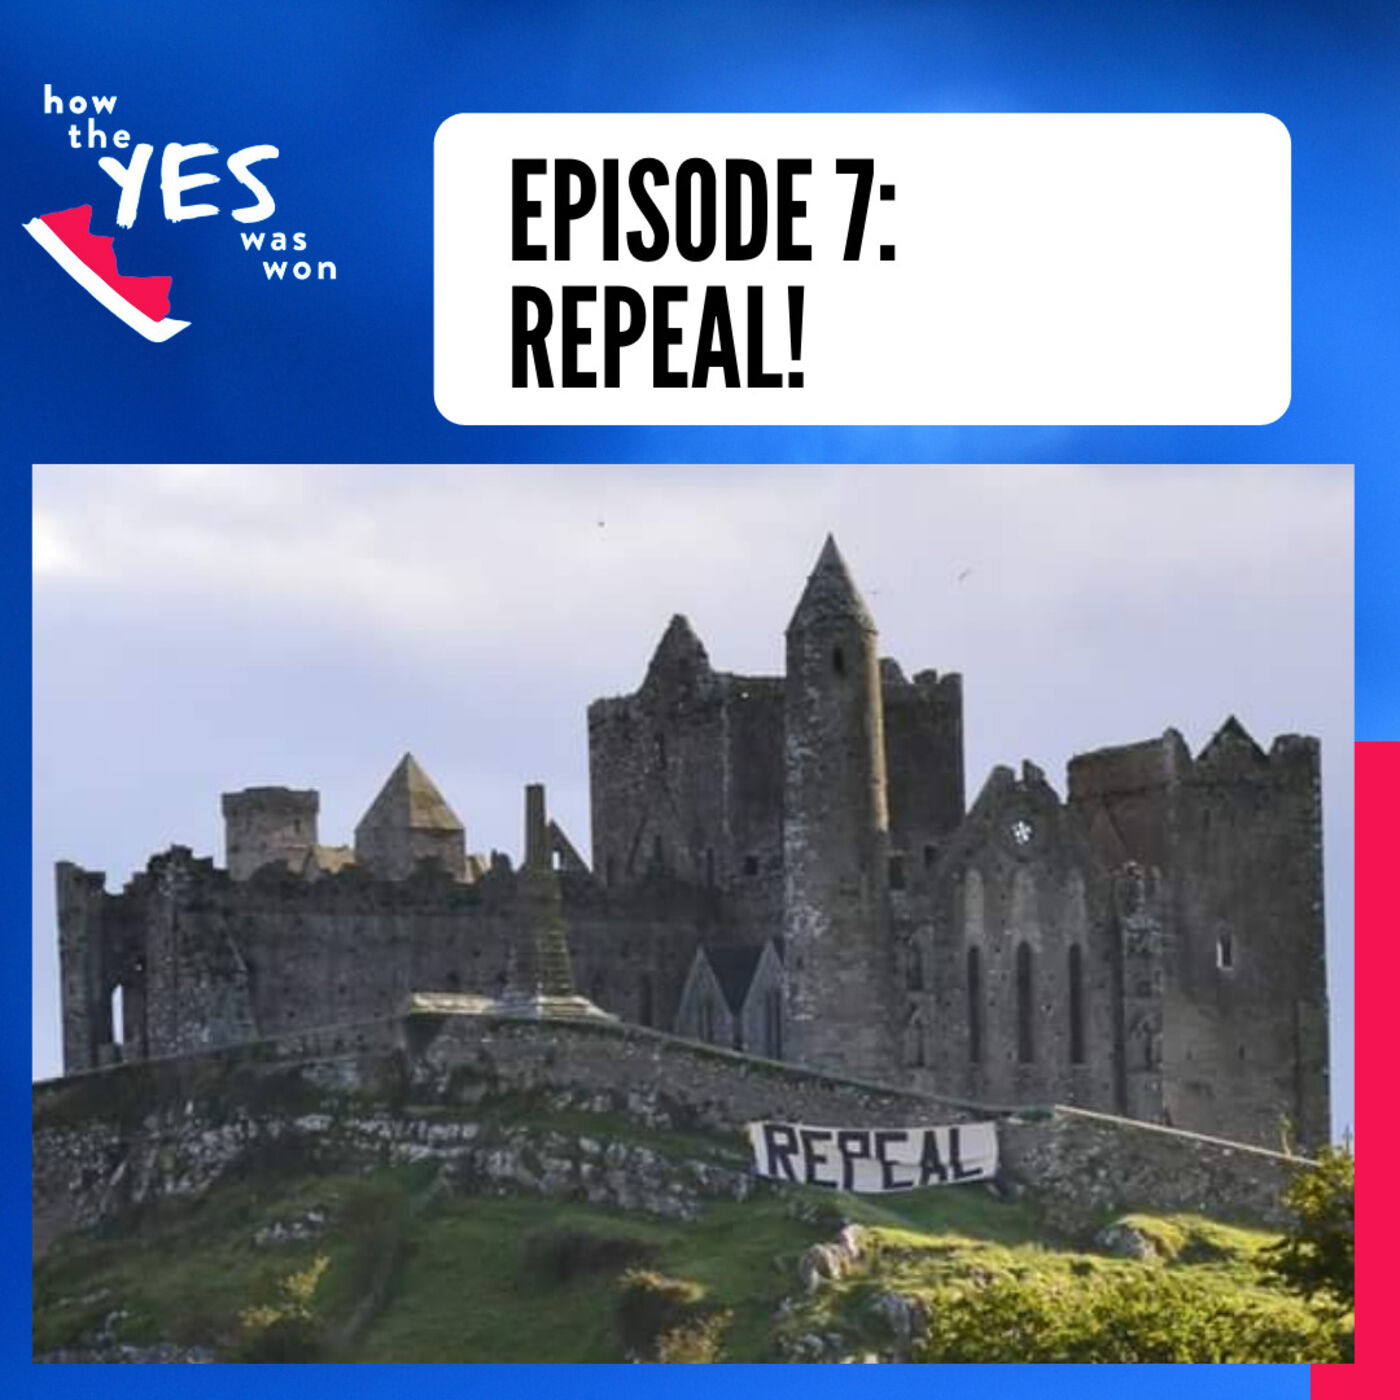 Episode 7: Repeal!